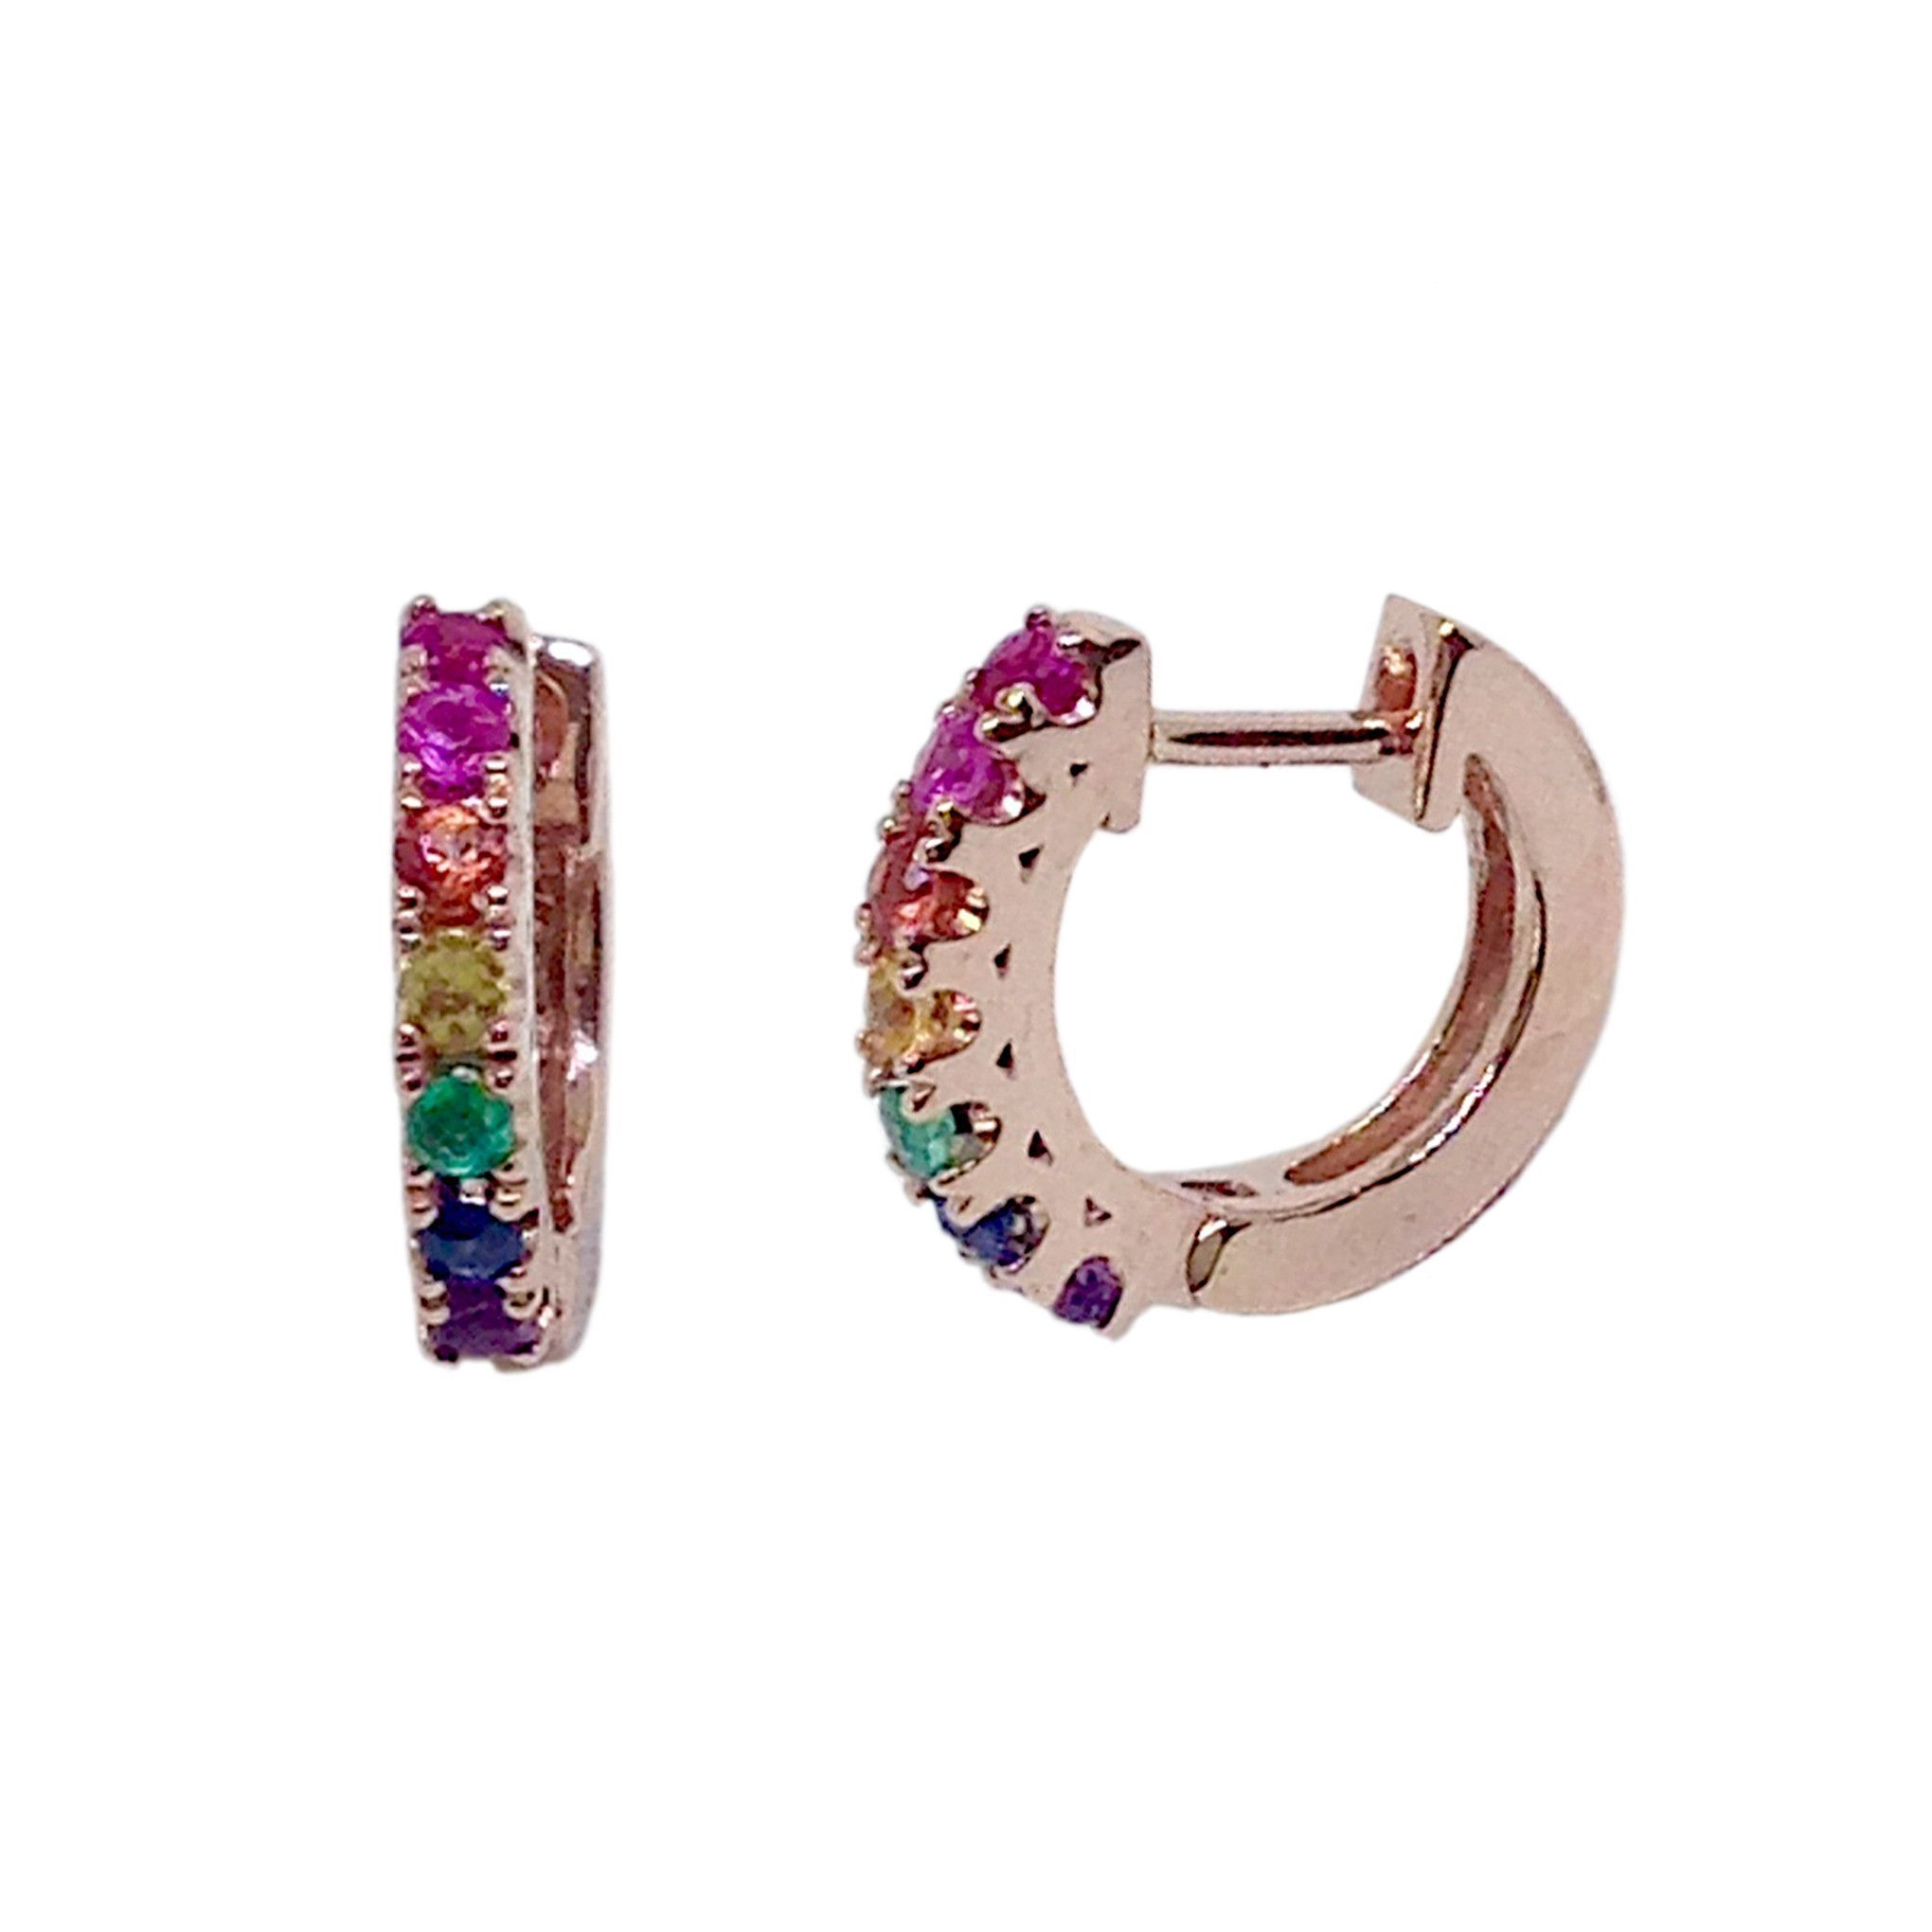 14K Gold & Rainbow Gemstone Thick Huggie Hoop Earrings 11mm x 6mm